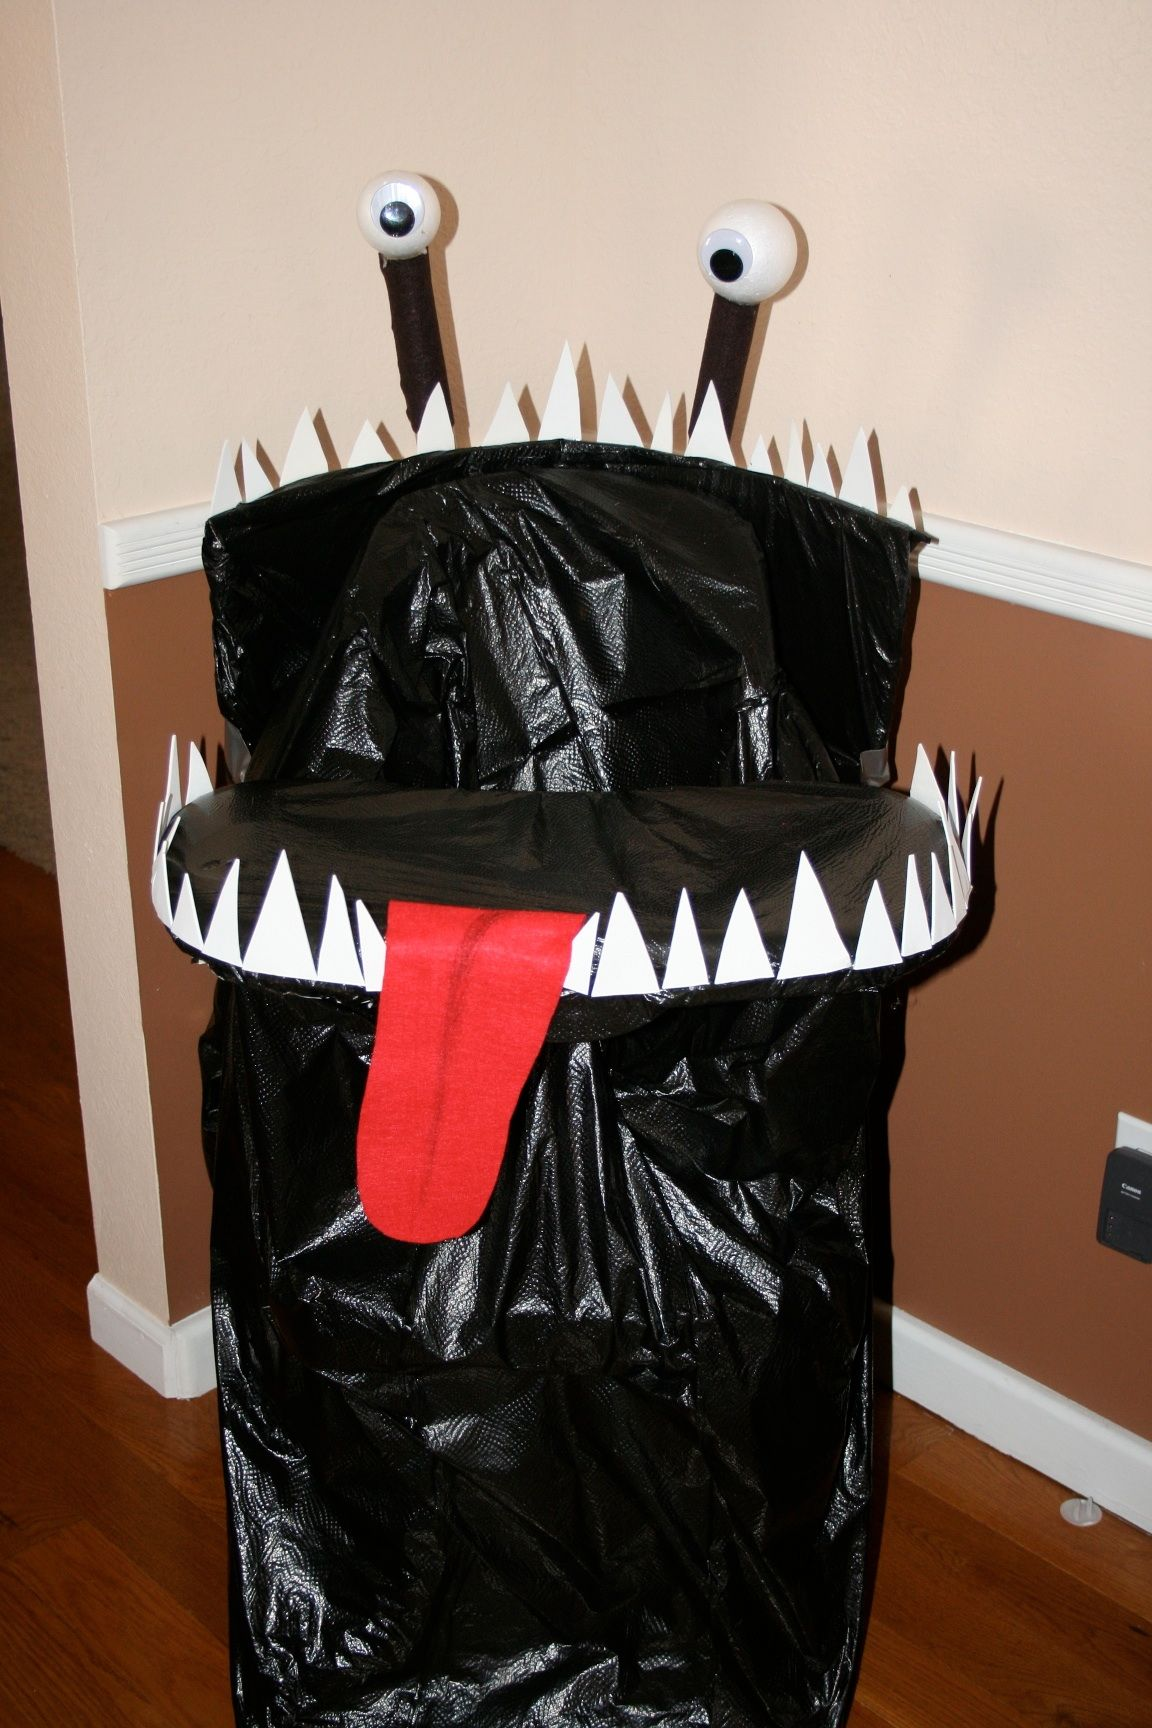 First High Chair Invented Extra Large Bean Bag Chairs Birthday Decorated With The Monster Theme